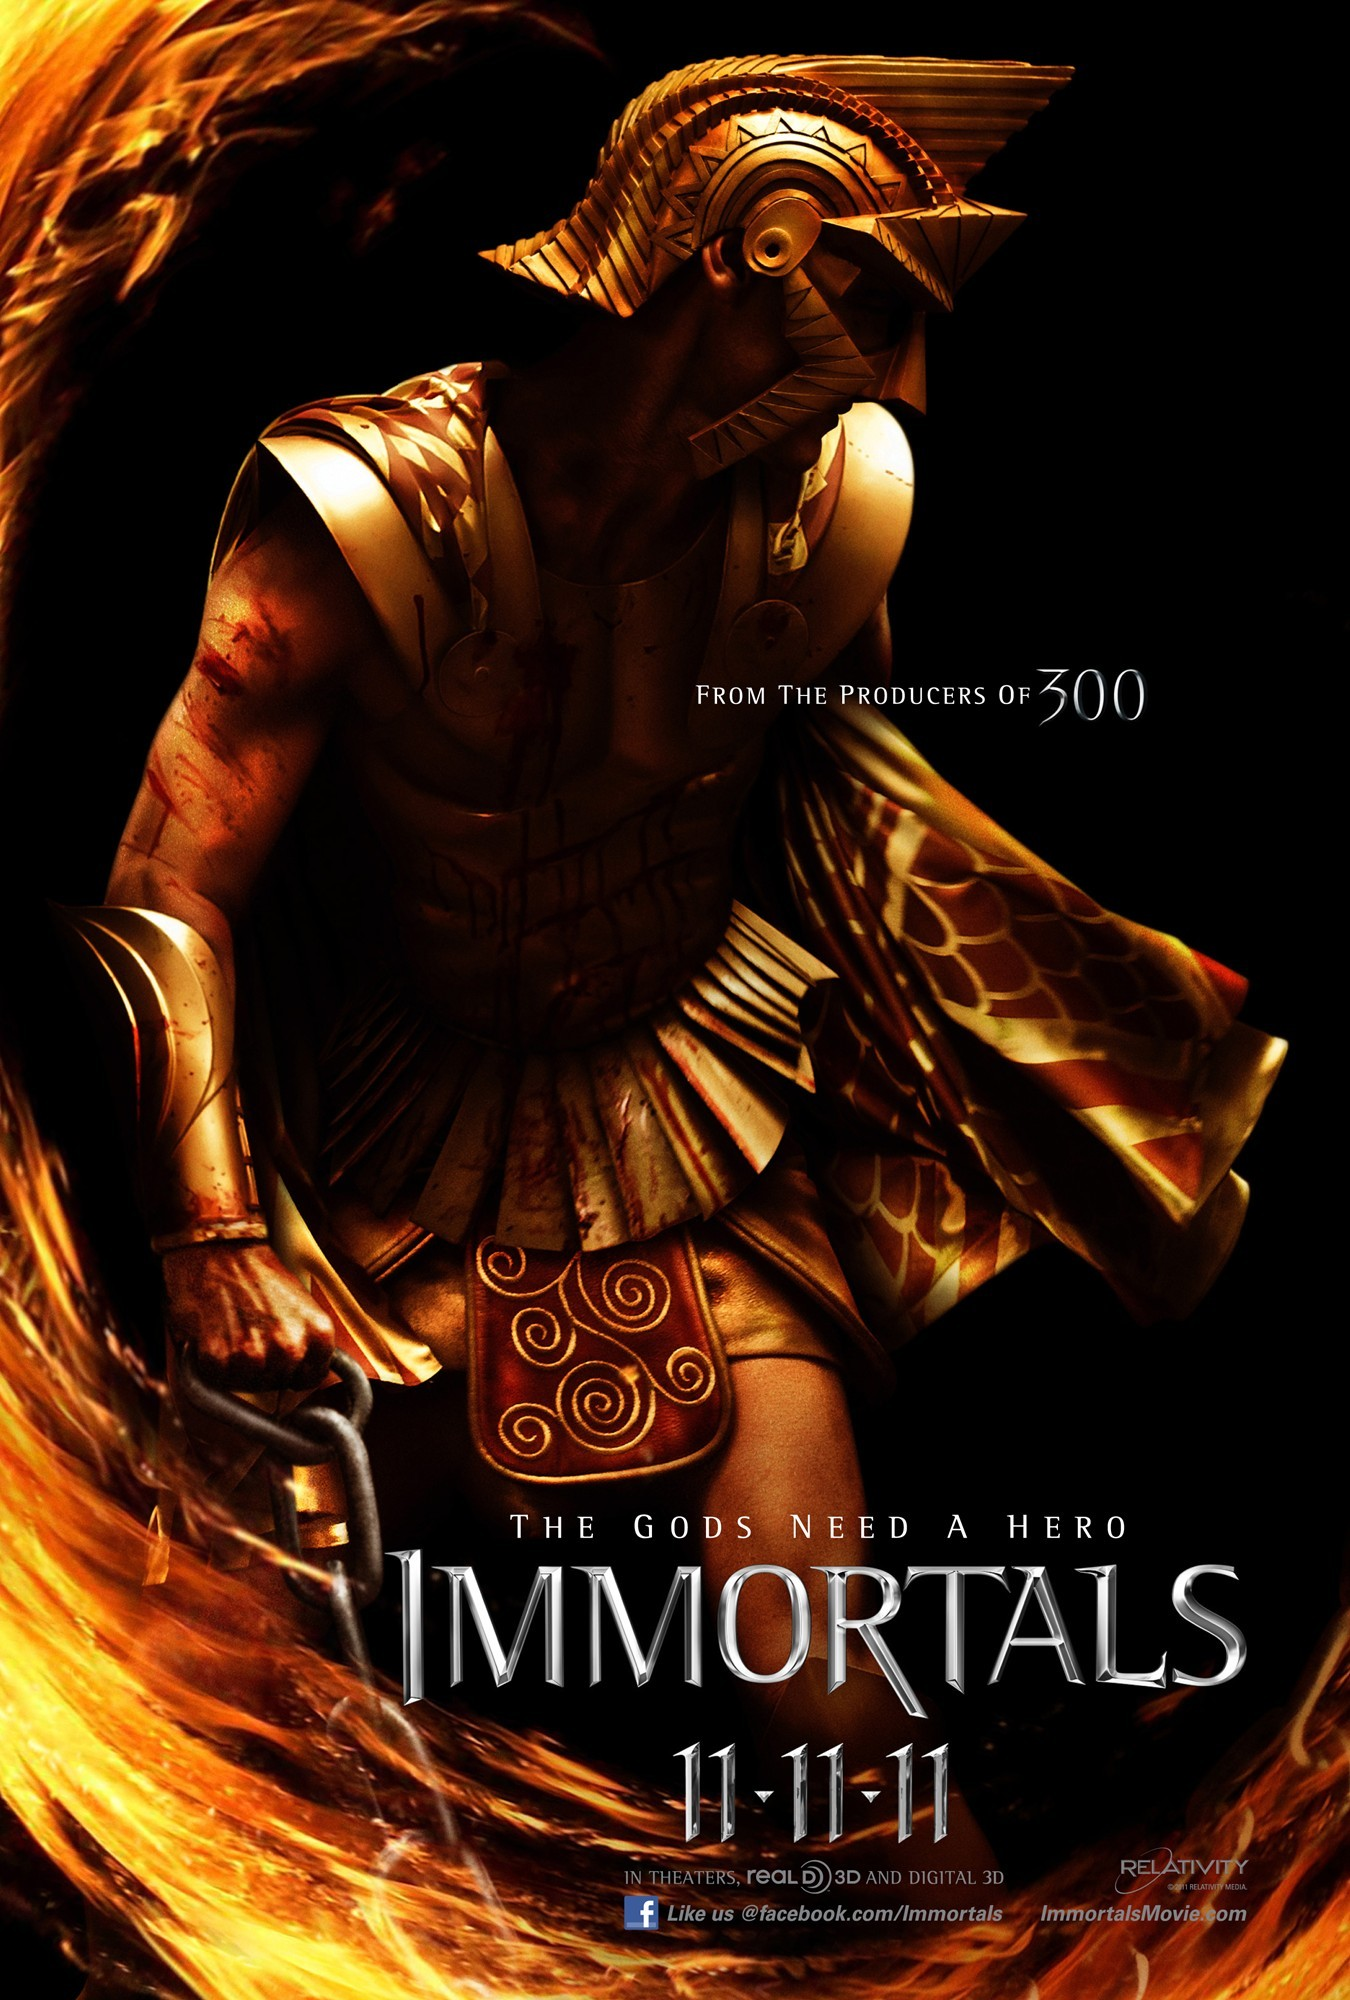 Immortals Movie Cast Immortals Movie 2011